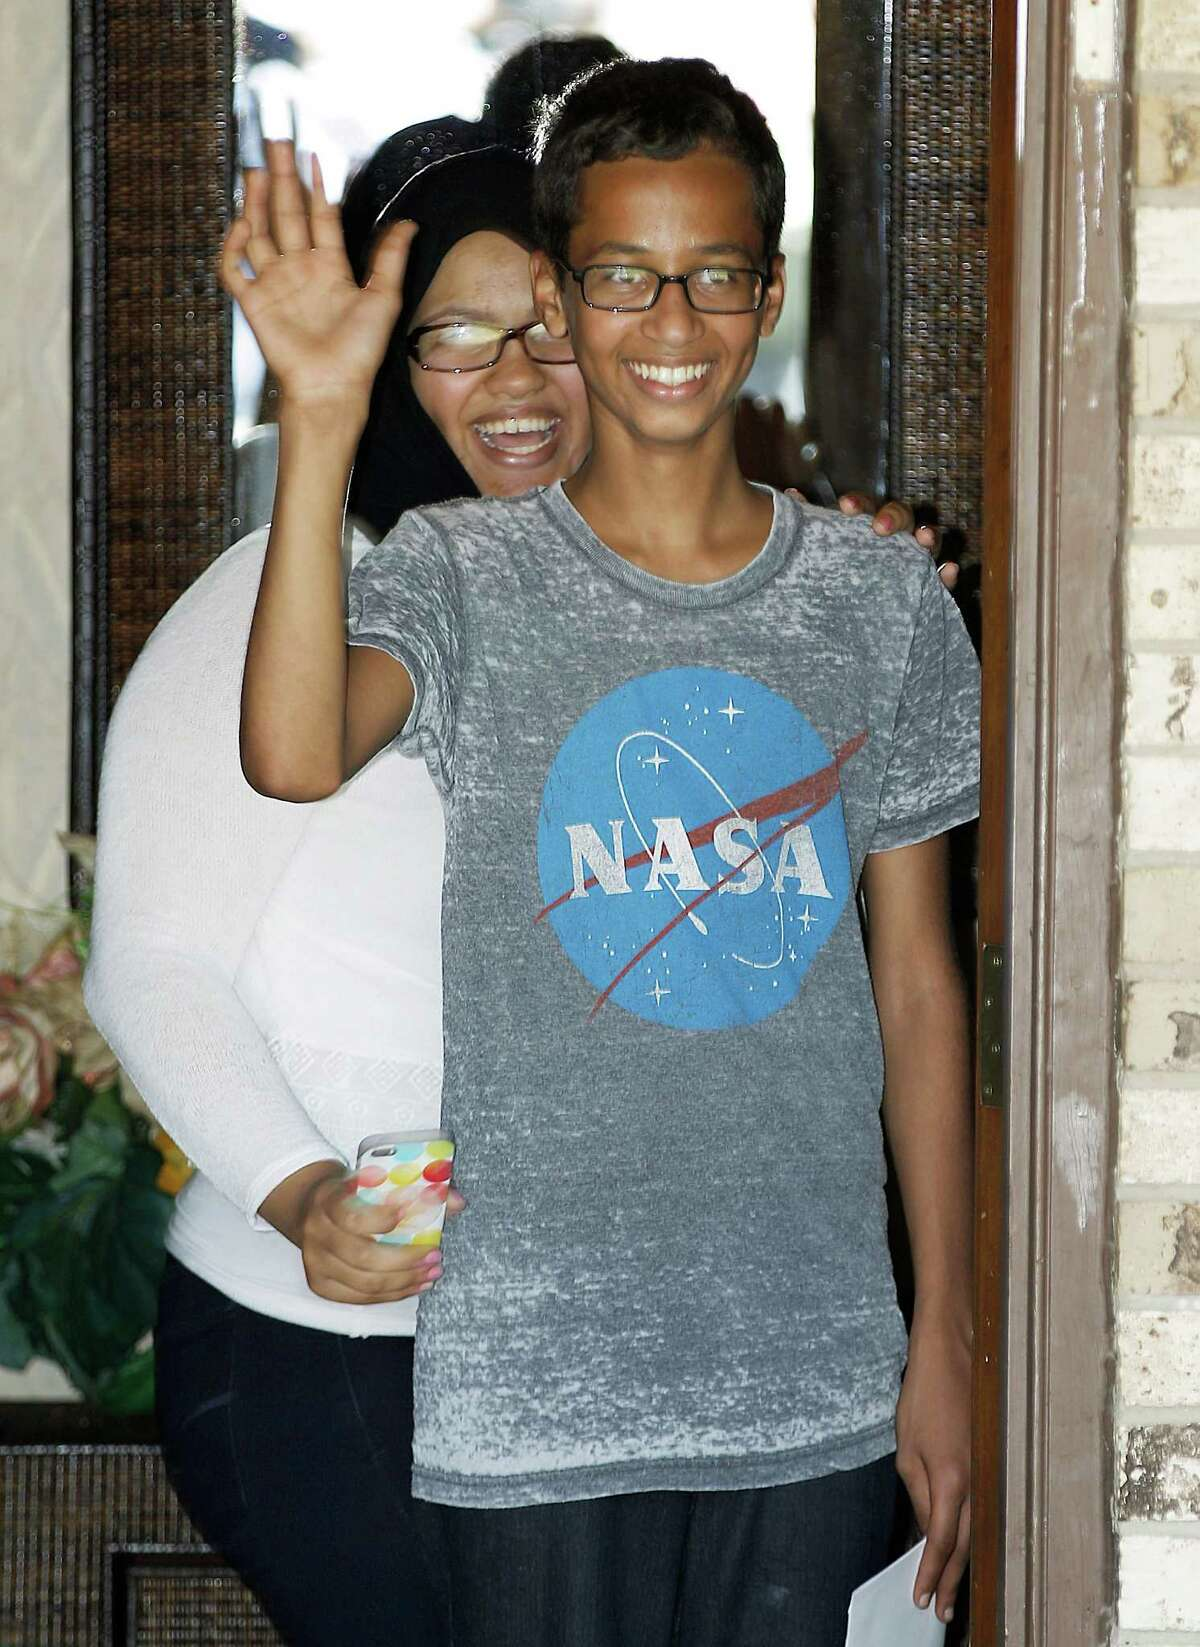 Ahmed Mohamed, 14, right, waves to the media from the front door of his house as his sister, Eyman Mohamed, looks on in Irving. Ahmed was accused of building a hoax bomb.